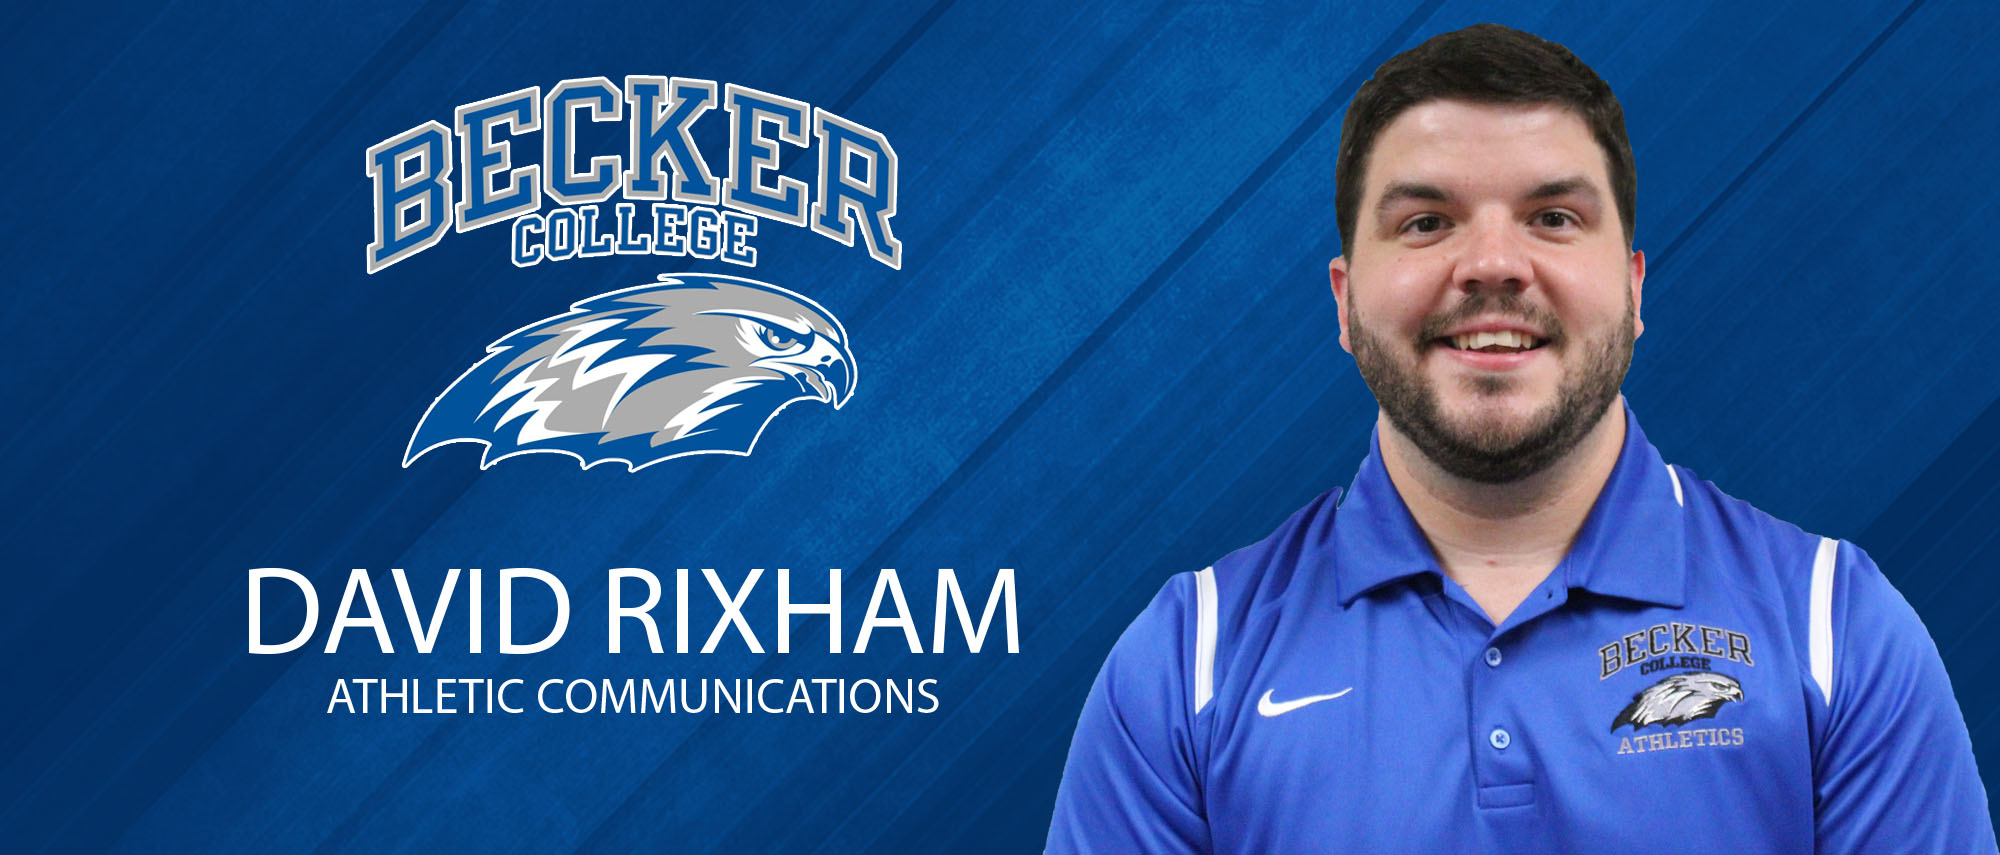 David Rixham, Assistant Director of Athletic Communications